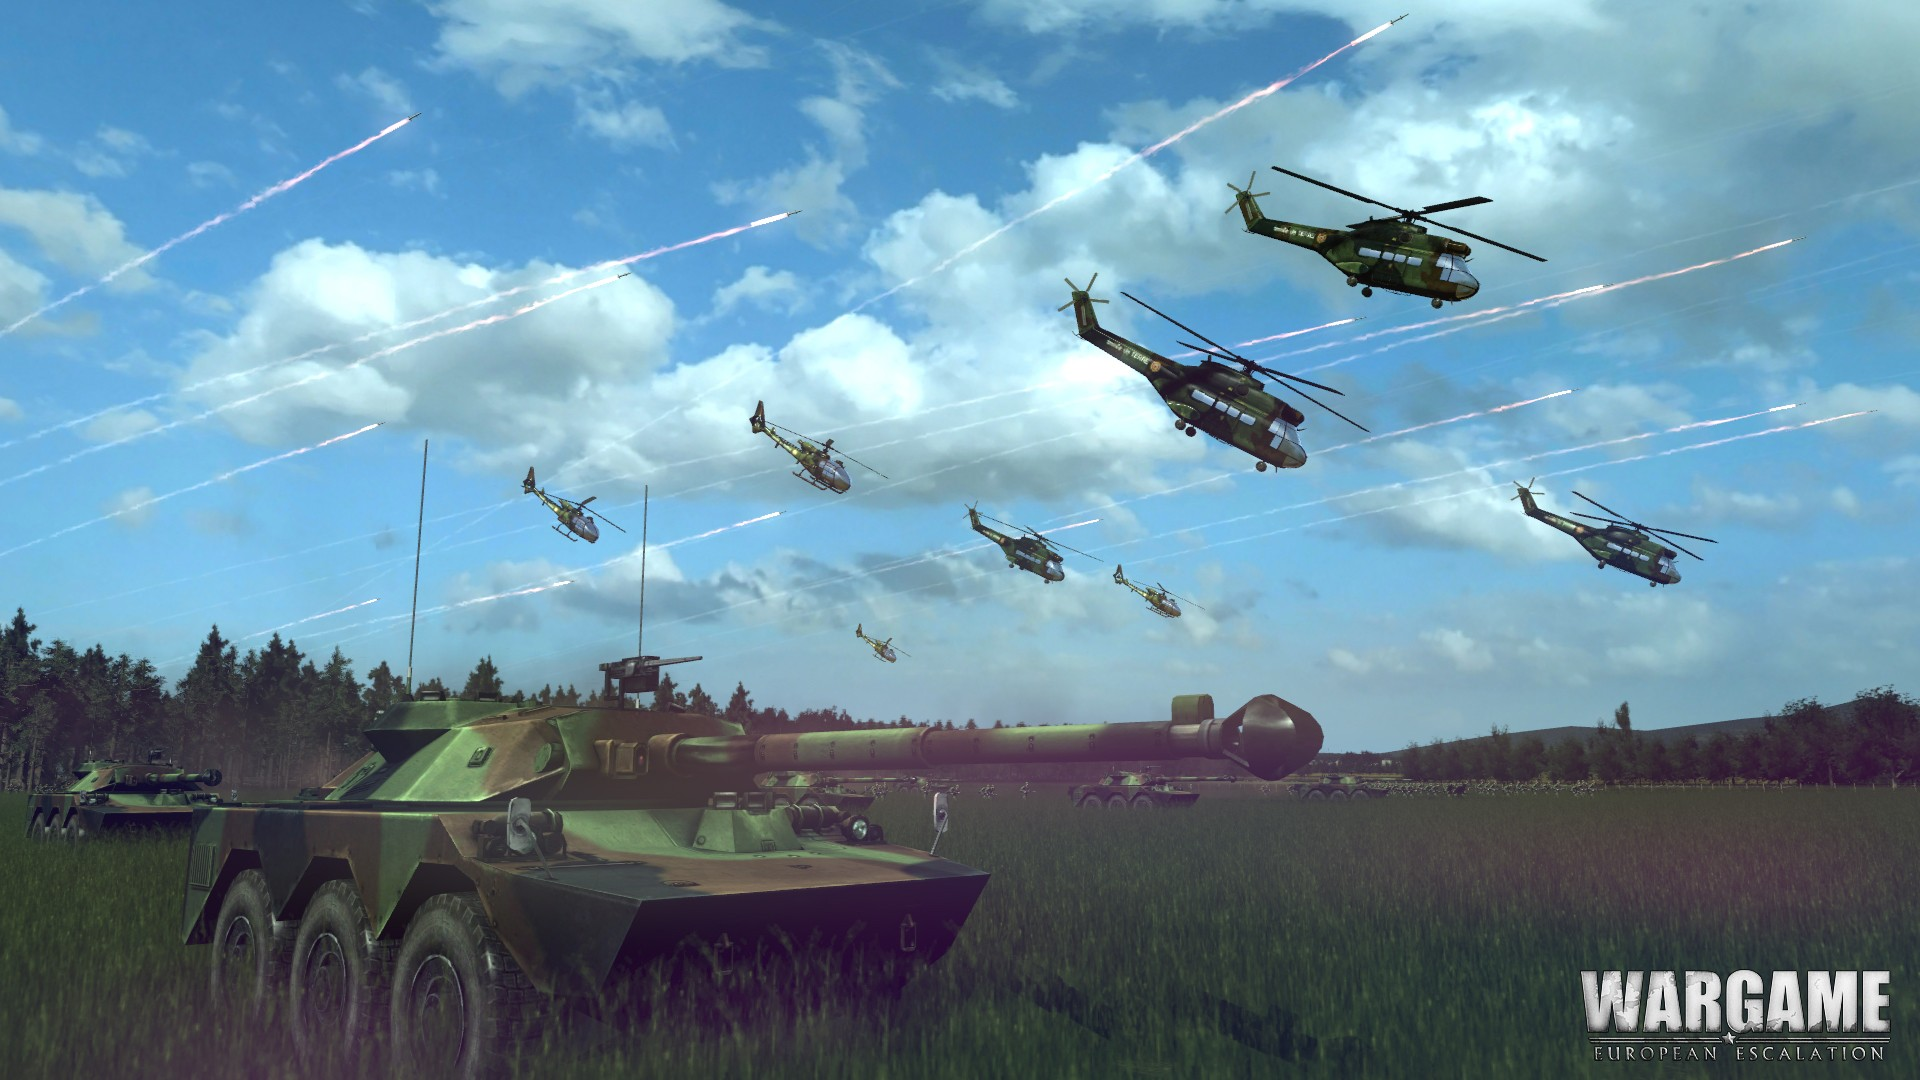 Wargame: European Escalation - Commander screenshot